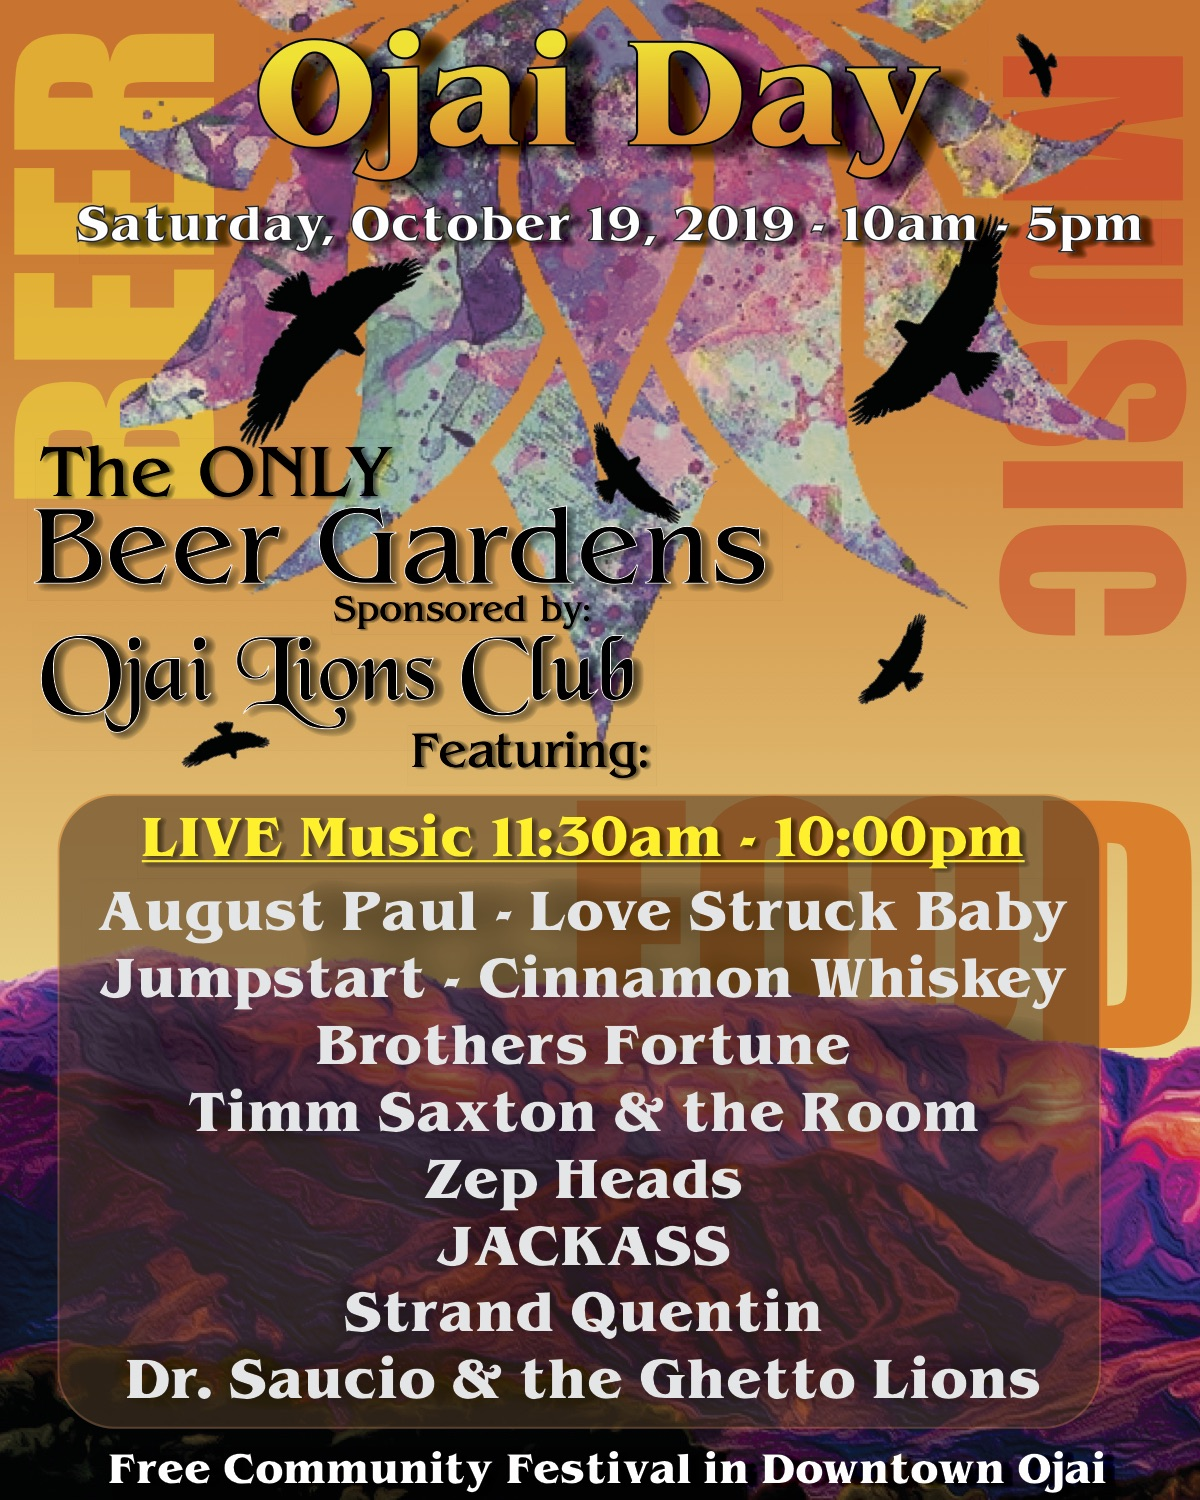 Ojai Day's Awesome Music Line Up